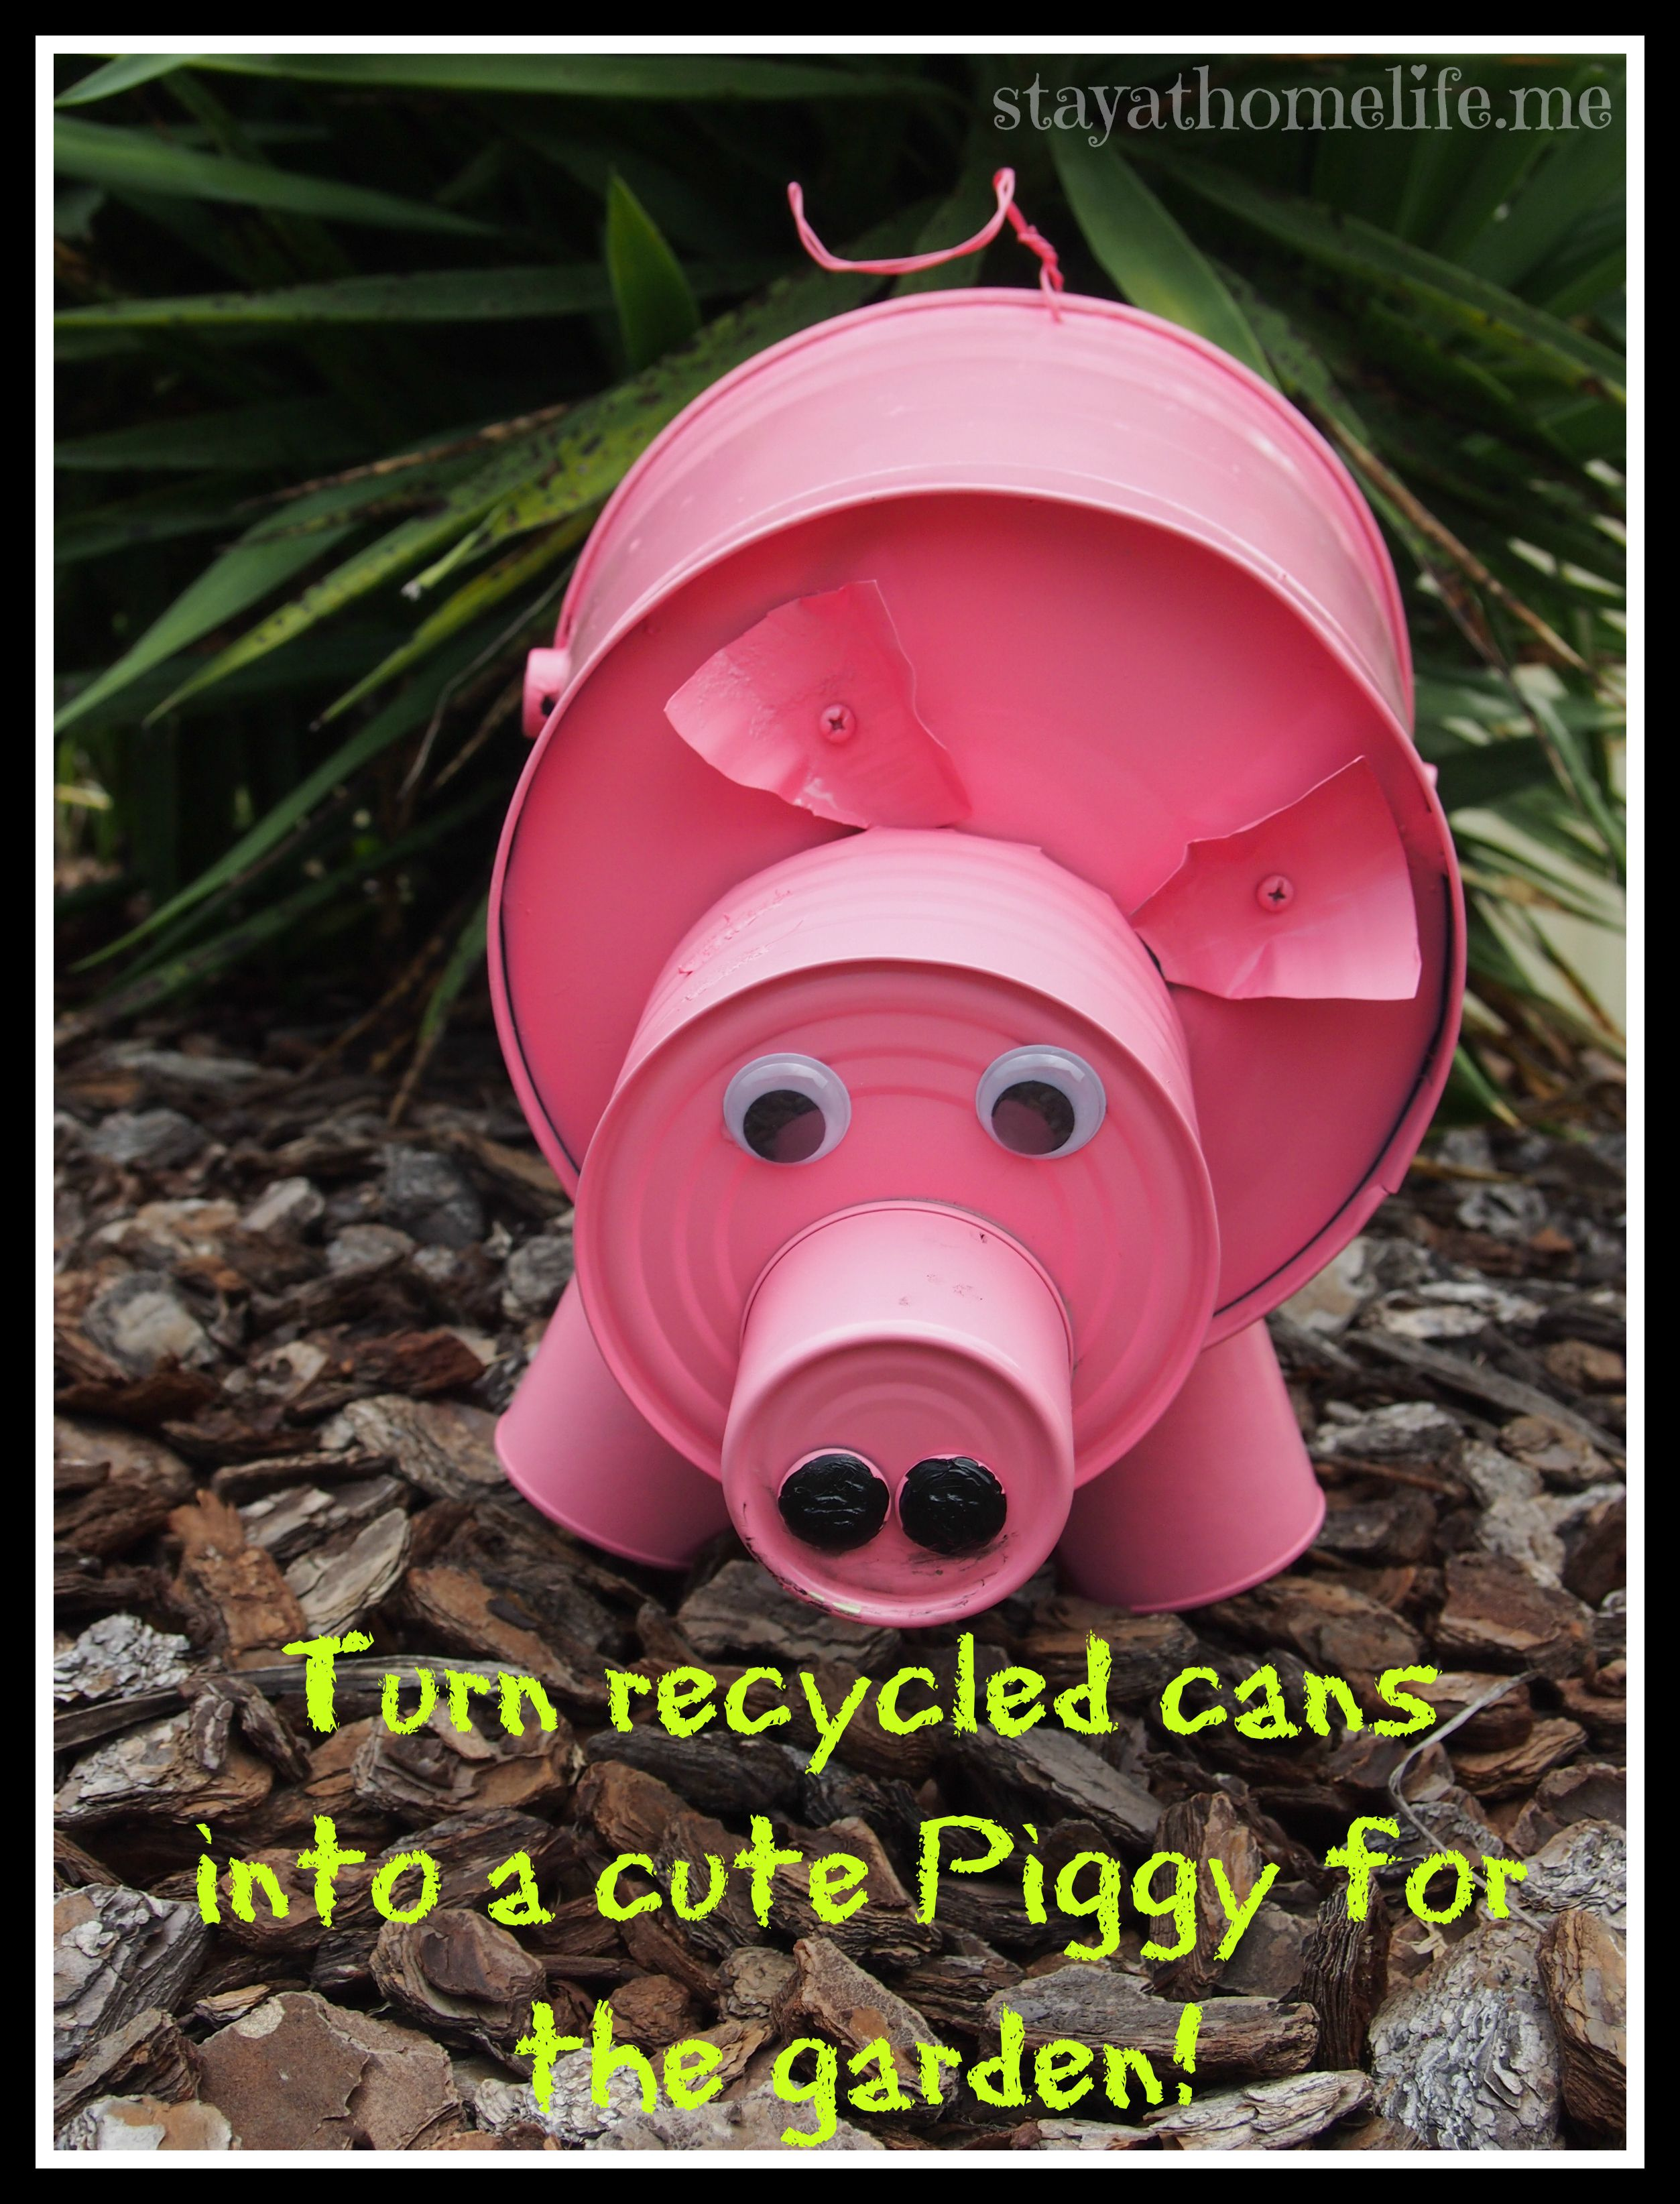 Piglet made of plastic bottles - its easy to make it with your own hands